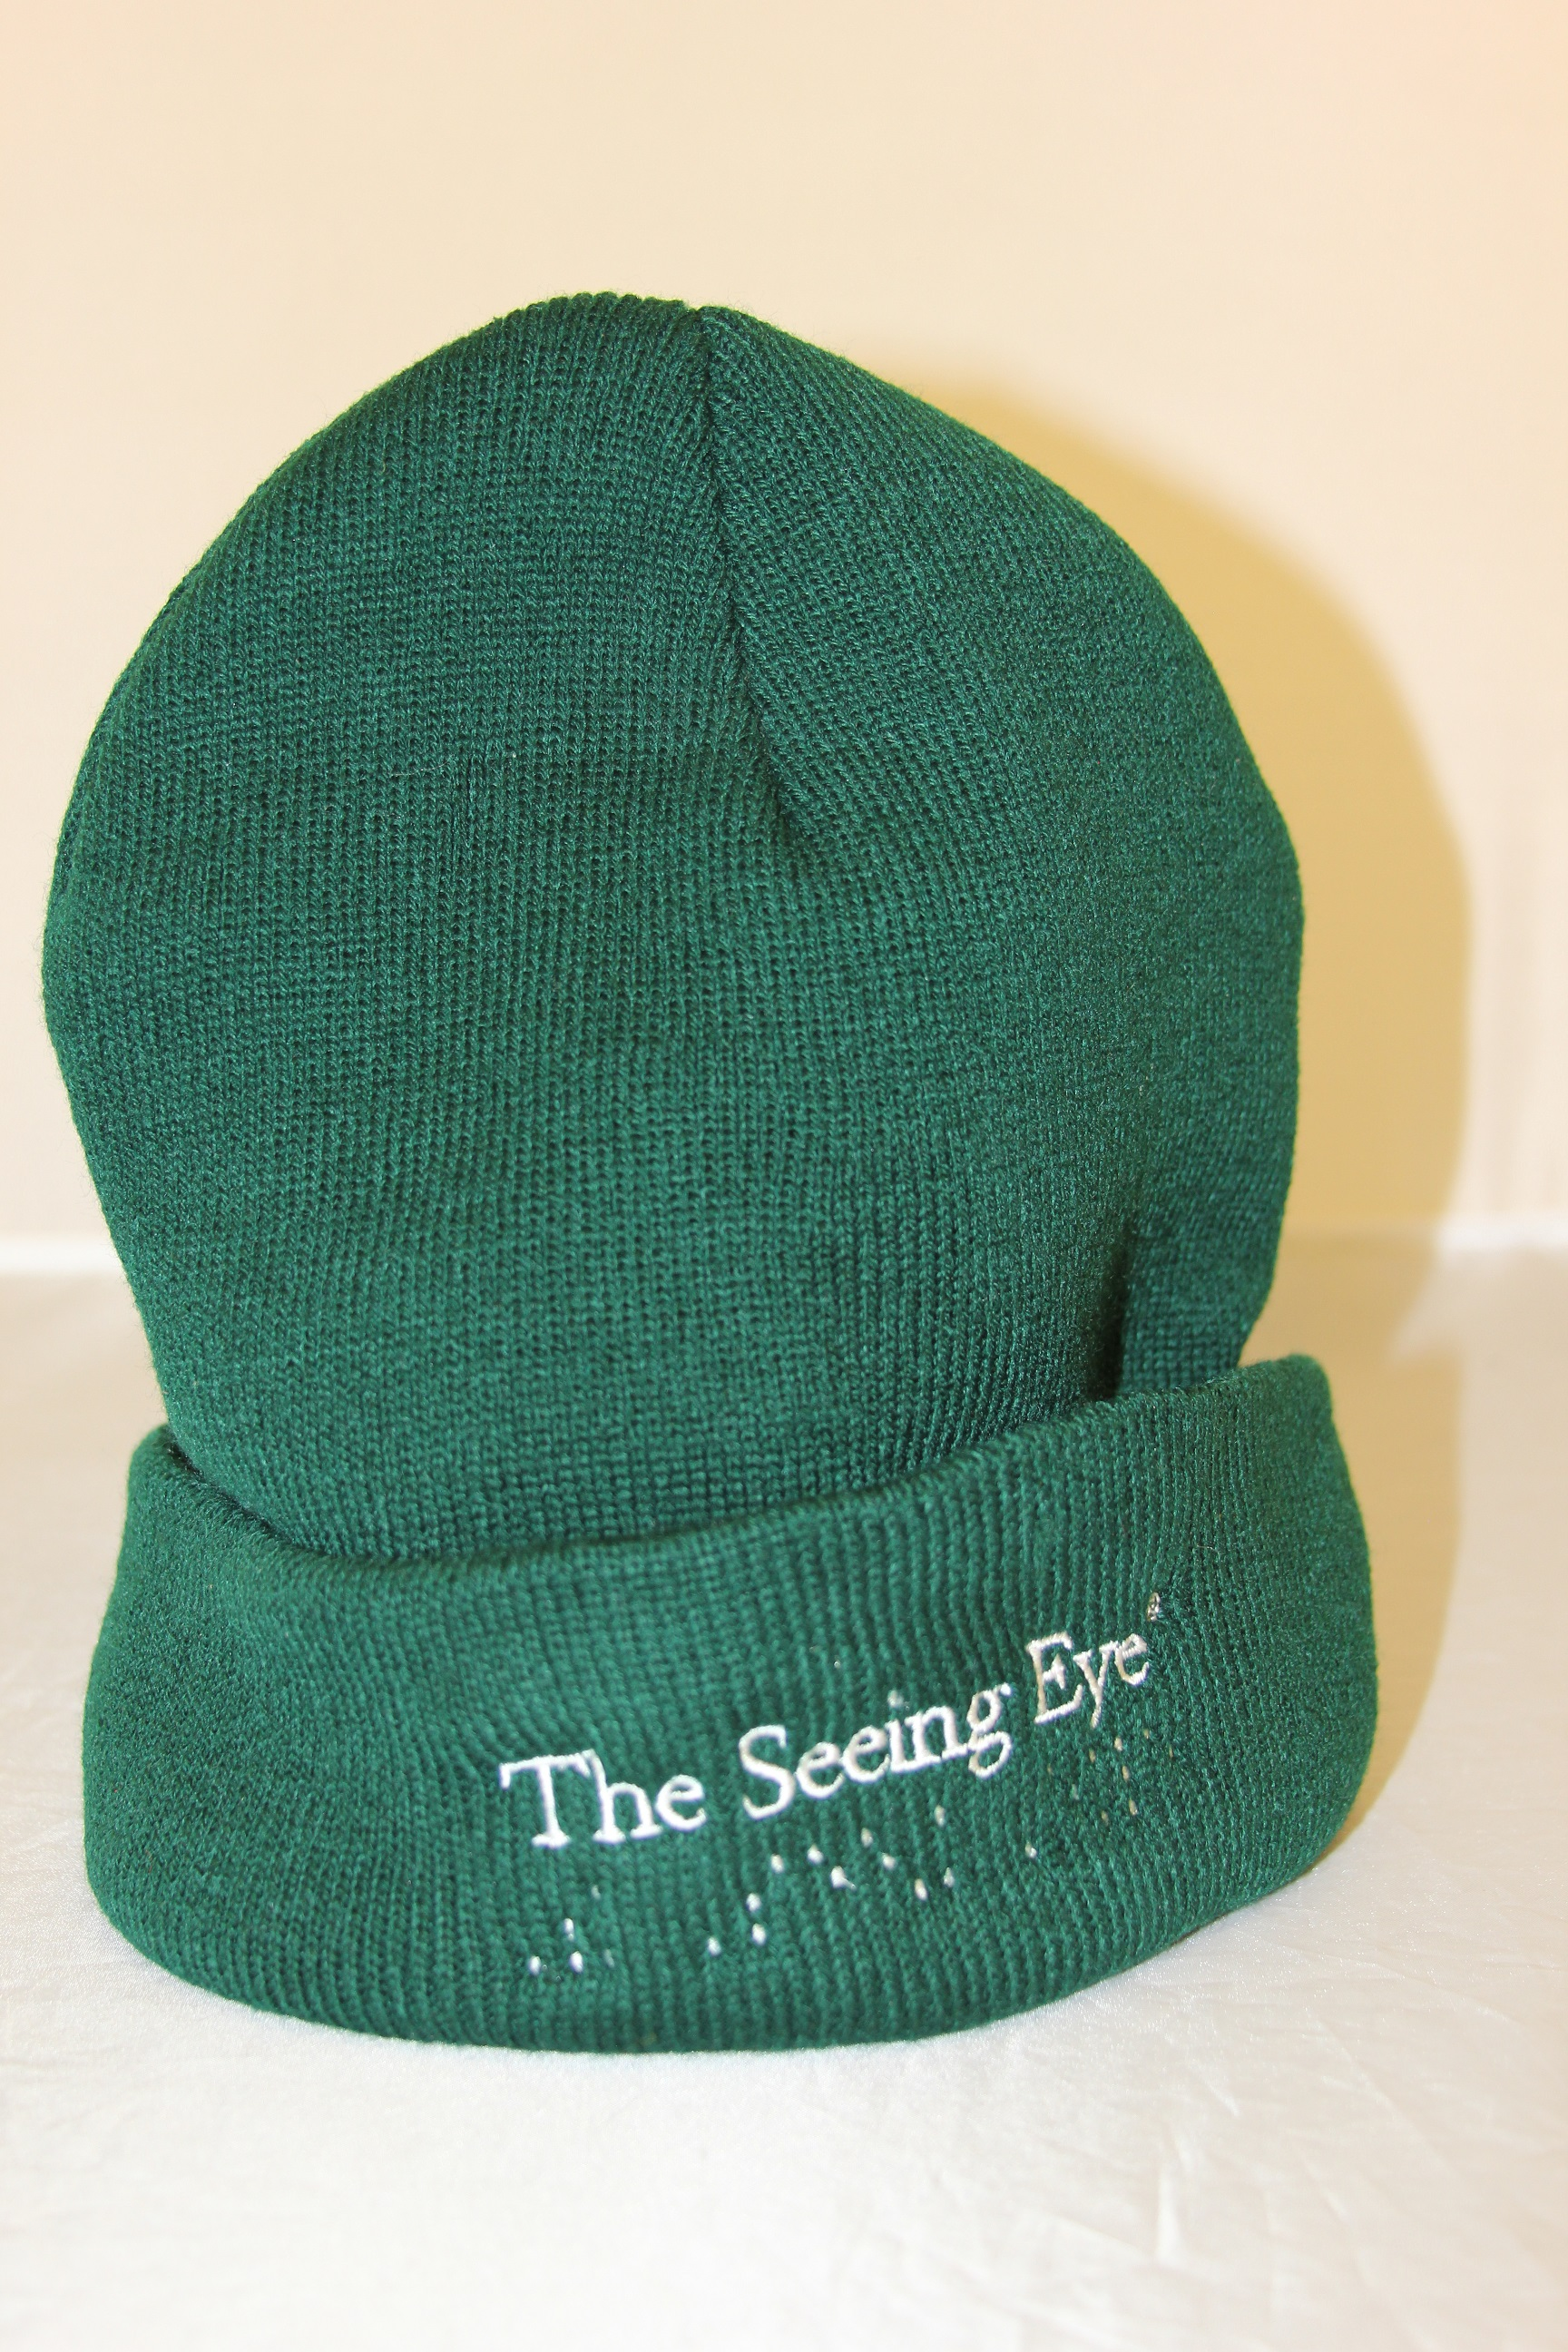 green knit winter hat